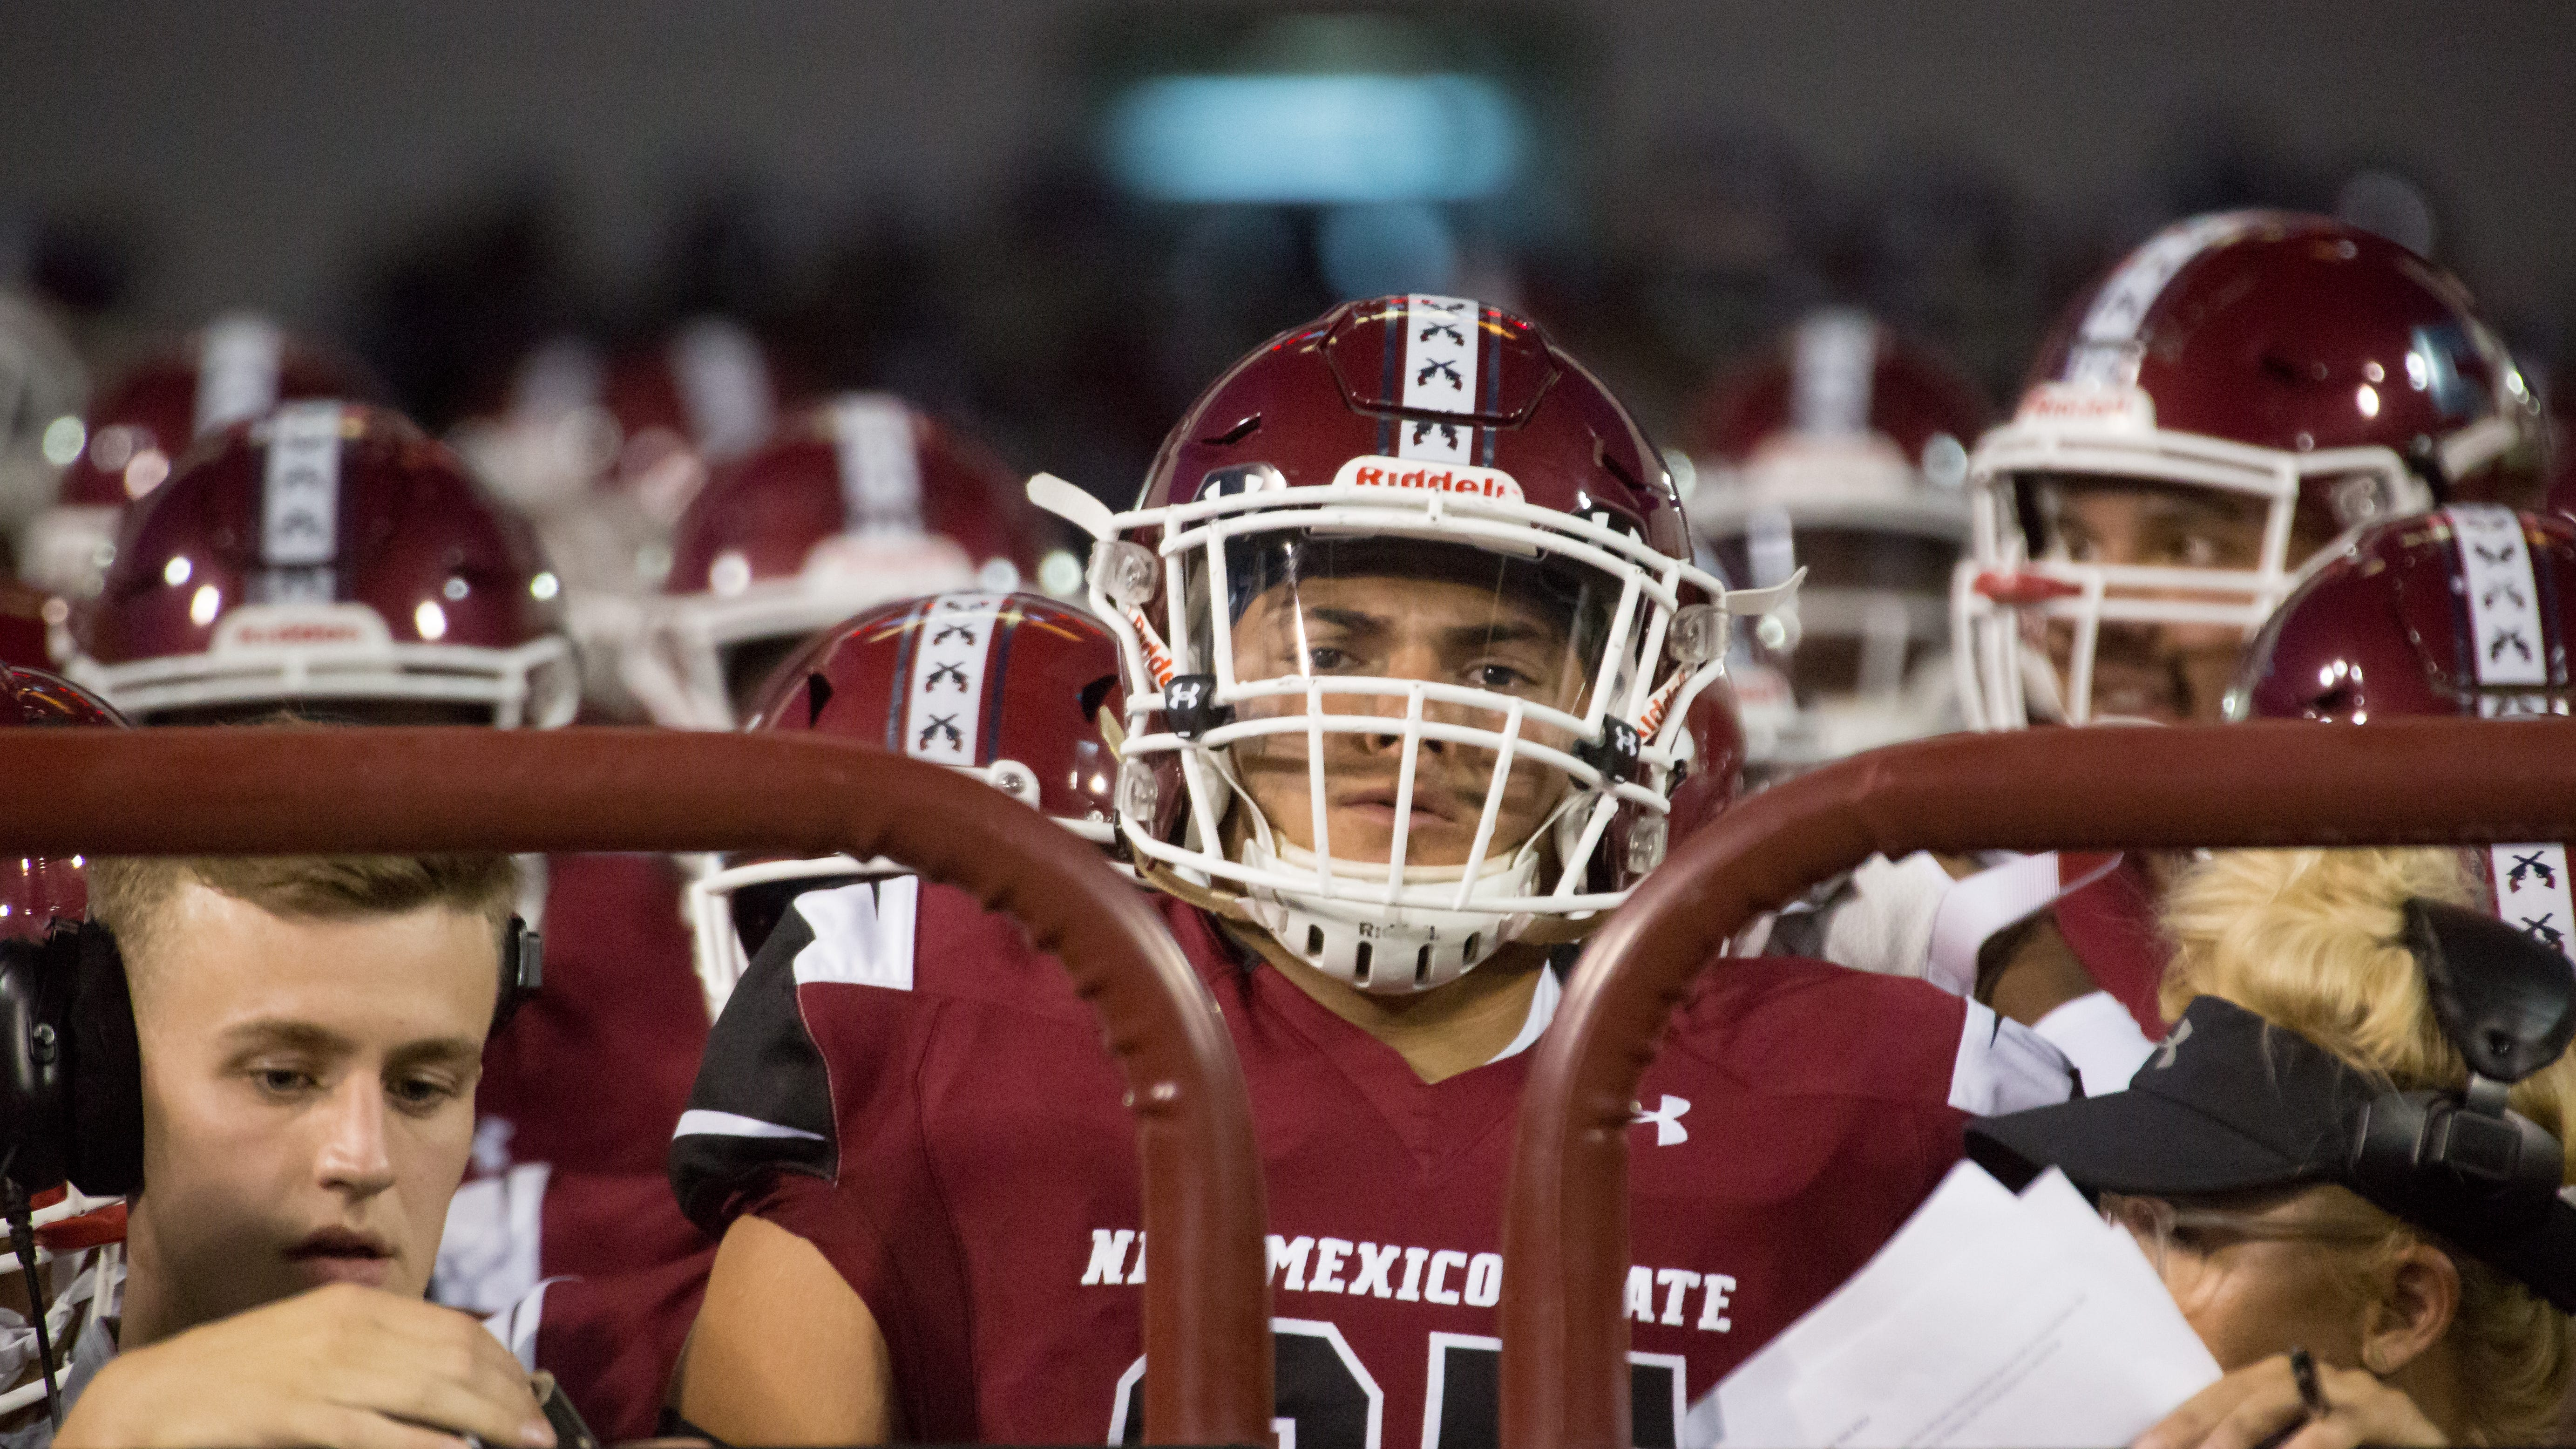 NMSU's Miguel Provencio prepares to take on Wyoming on Saturday, August 25, 2018, during the NMSU/Wyoming game at the Aggie Memorial Stadium.